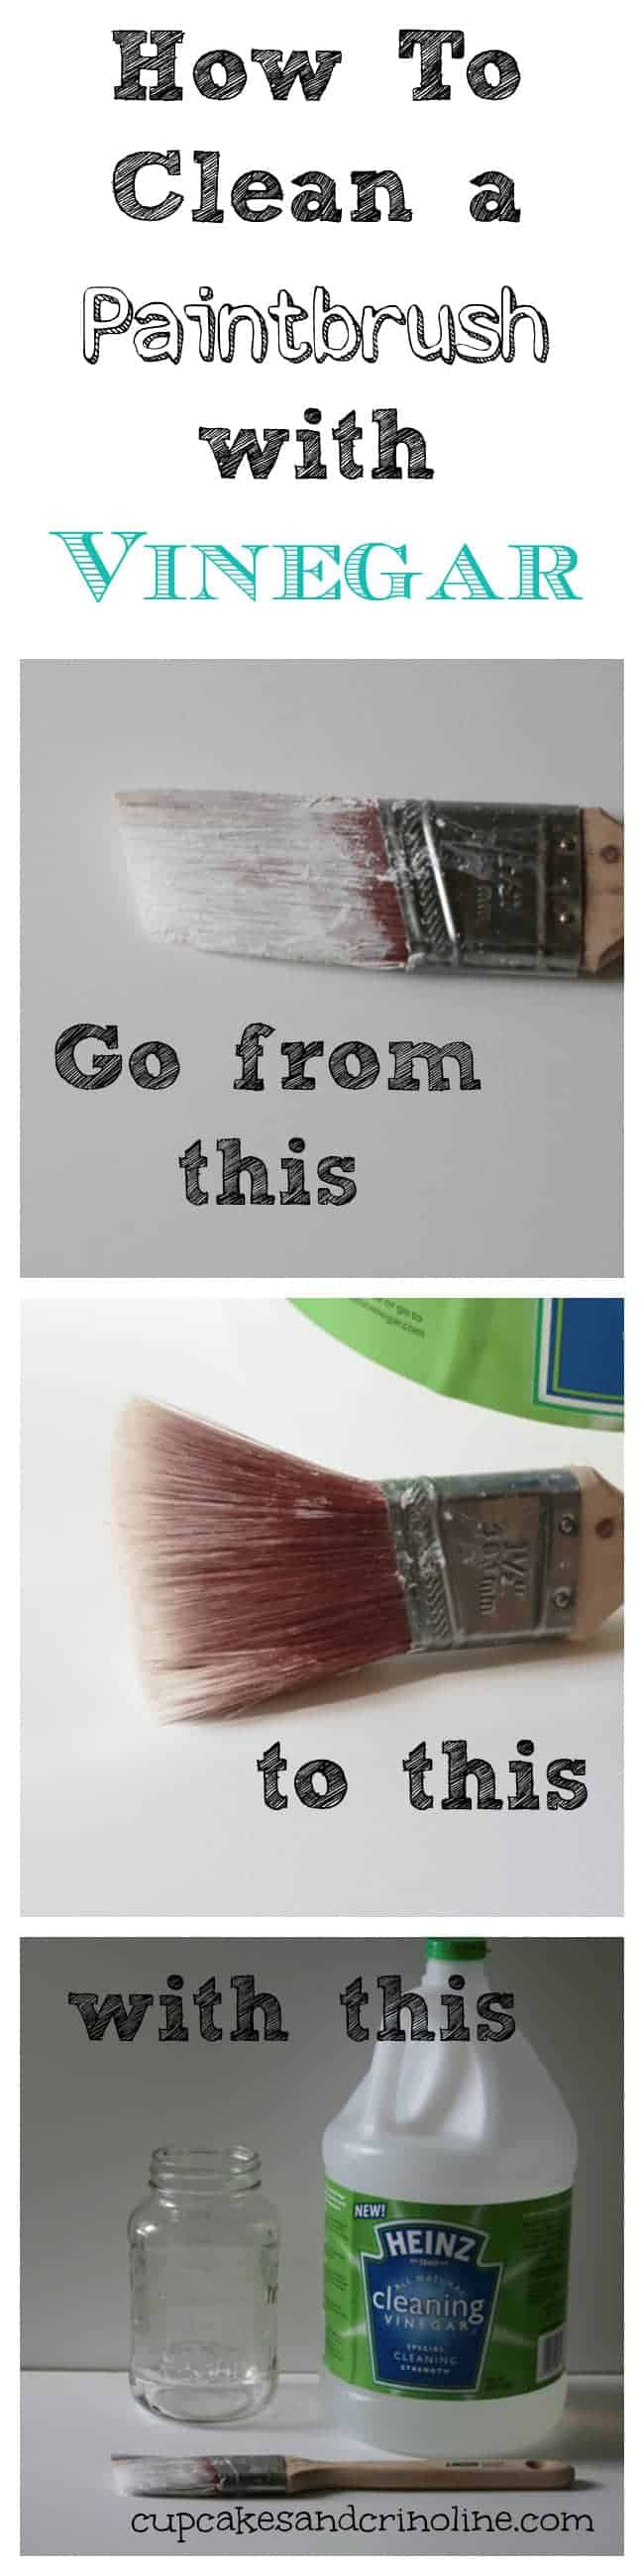 Long infographic with paintbrush before and after - how to clean a paintbrush with vinegar